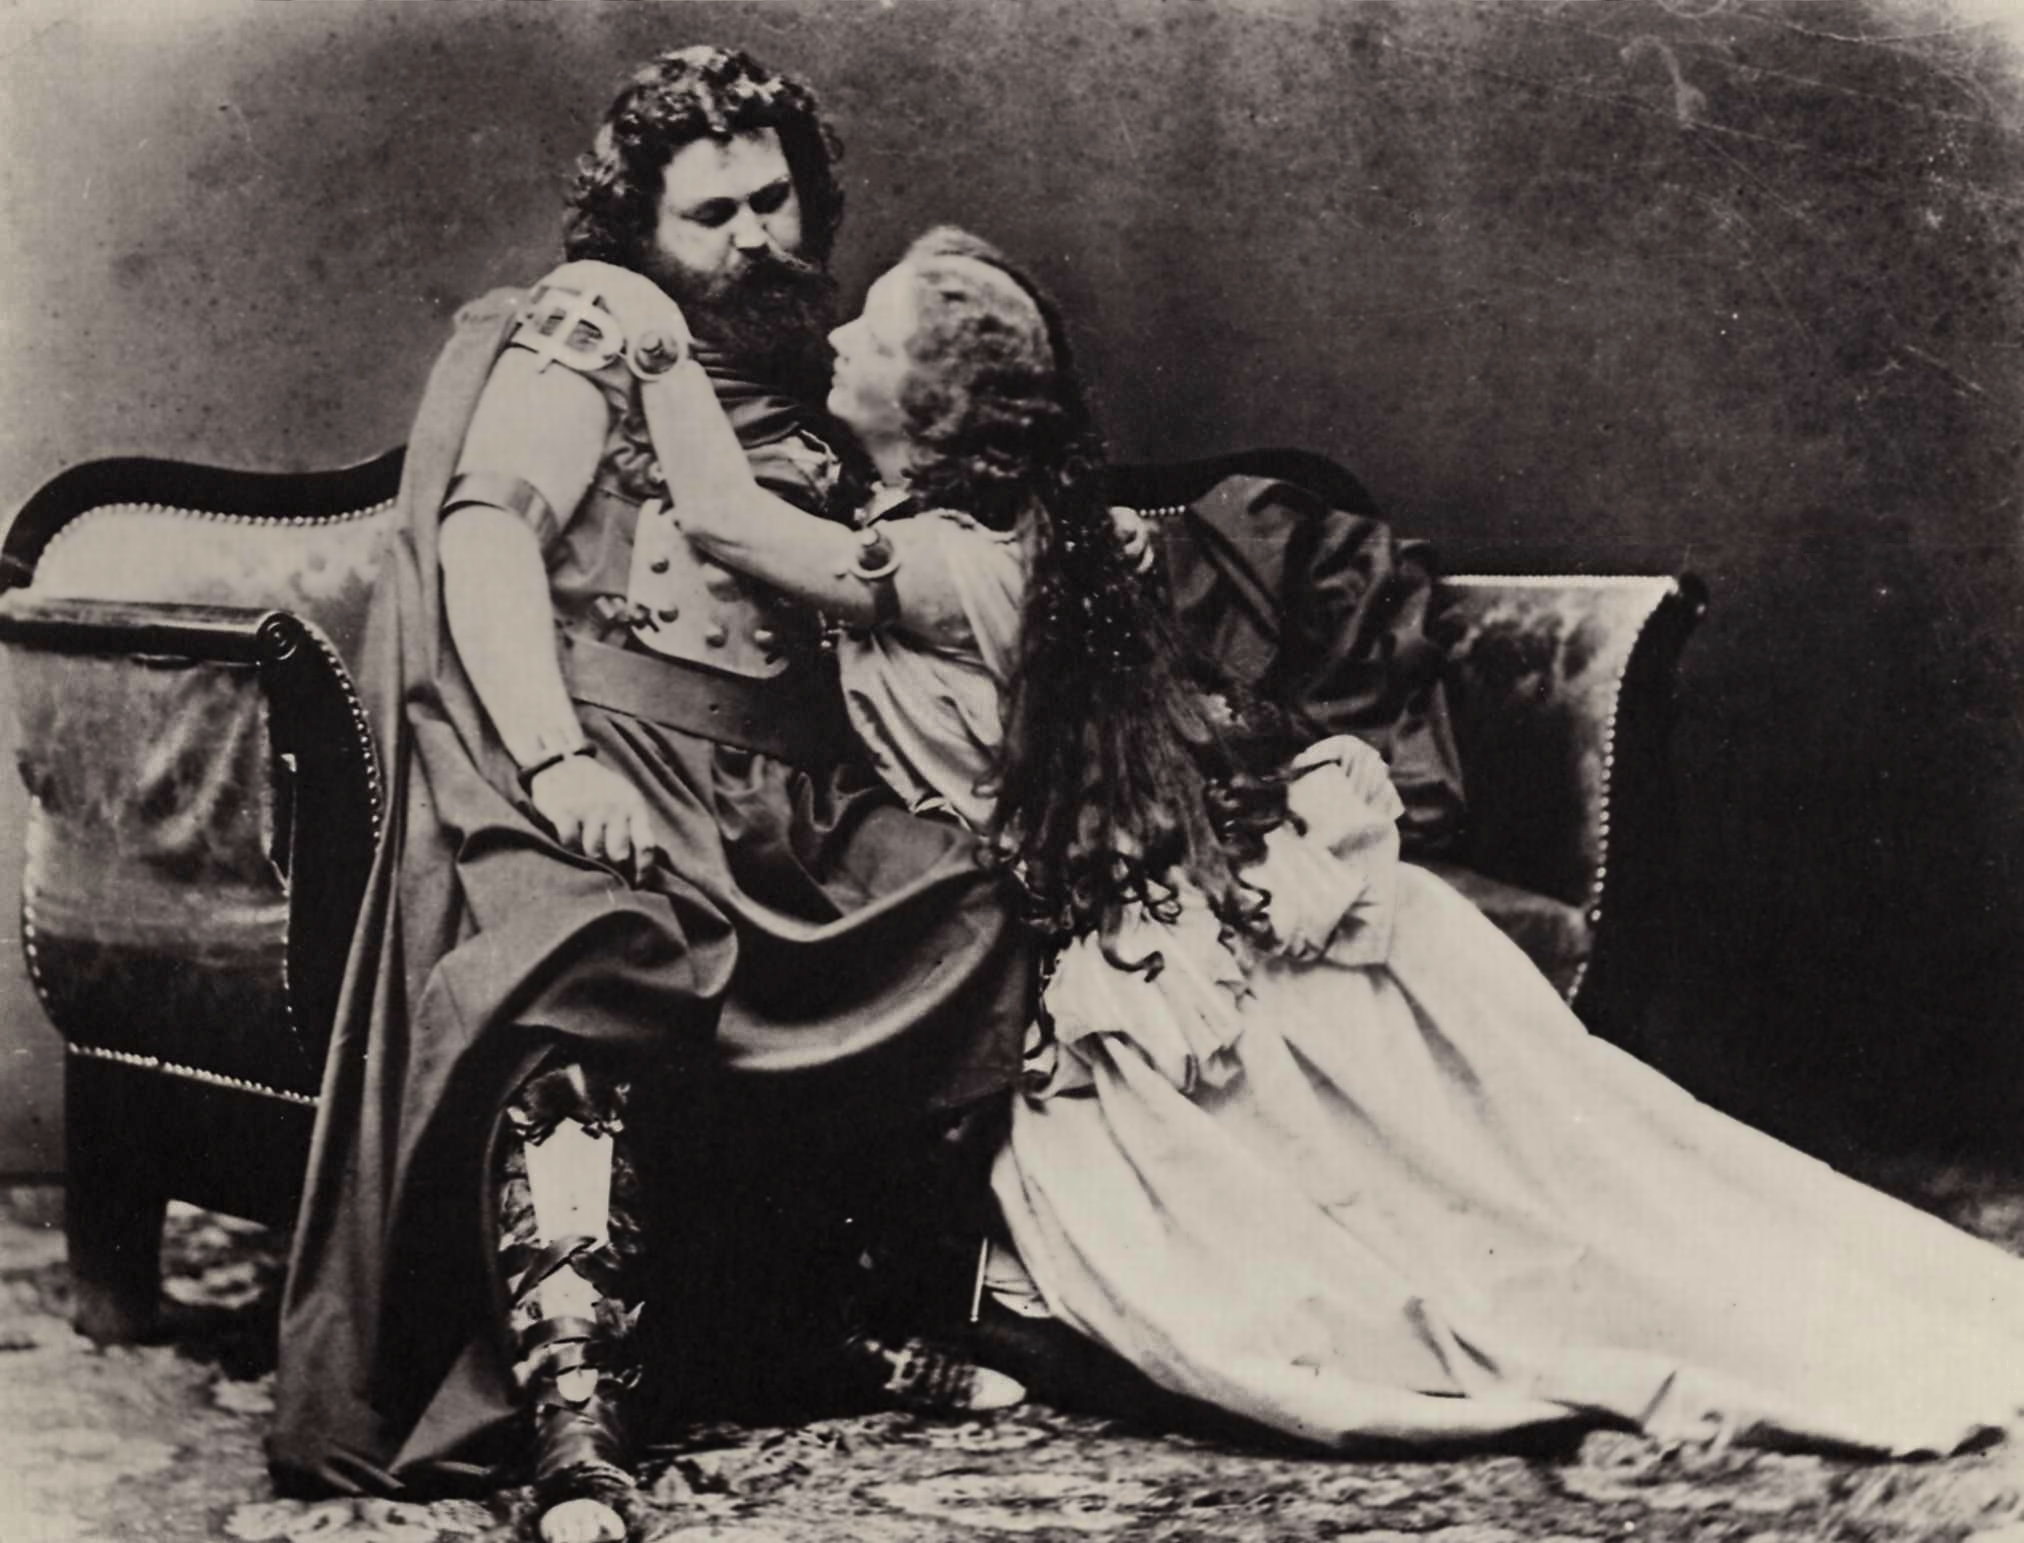 Ludwig and Malvina Schnorr von Carolsfeld as Tristan and Isolde at the first performance of Tristan und Isolde on June 10, 1865